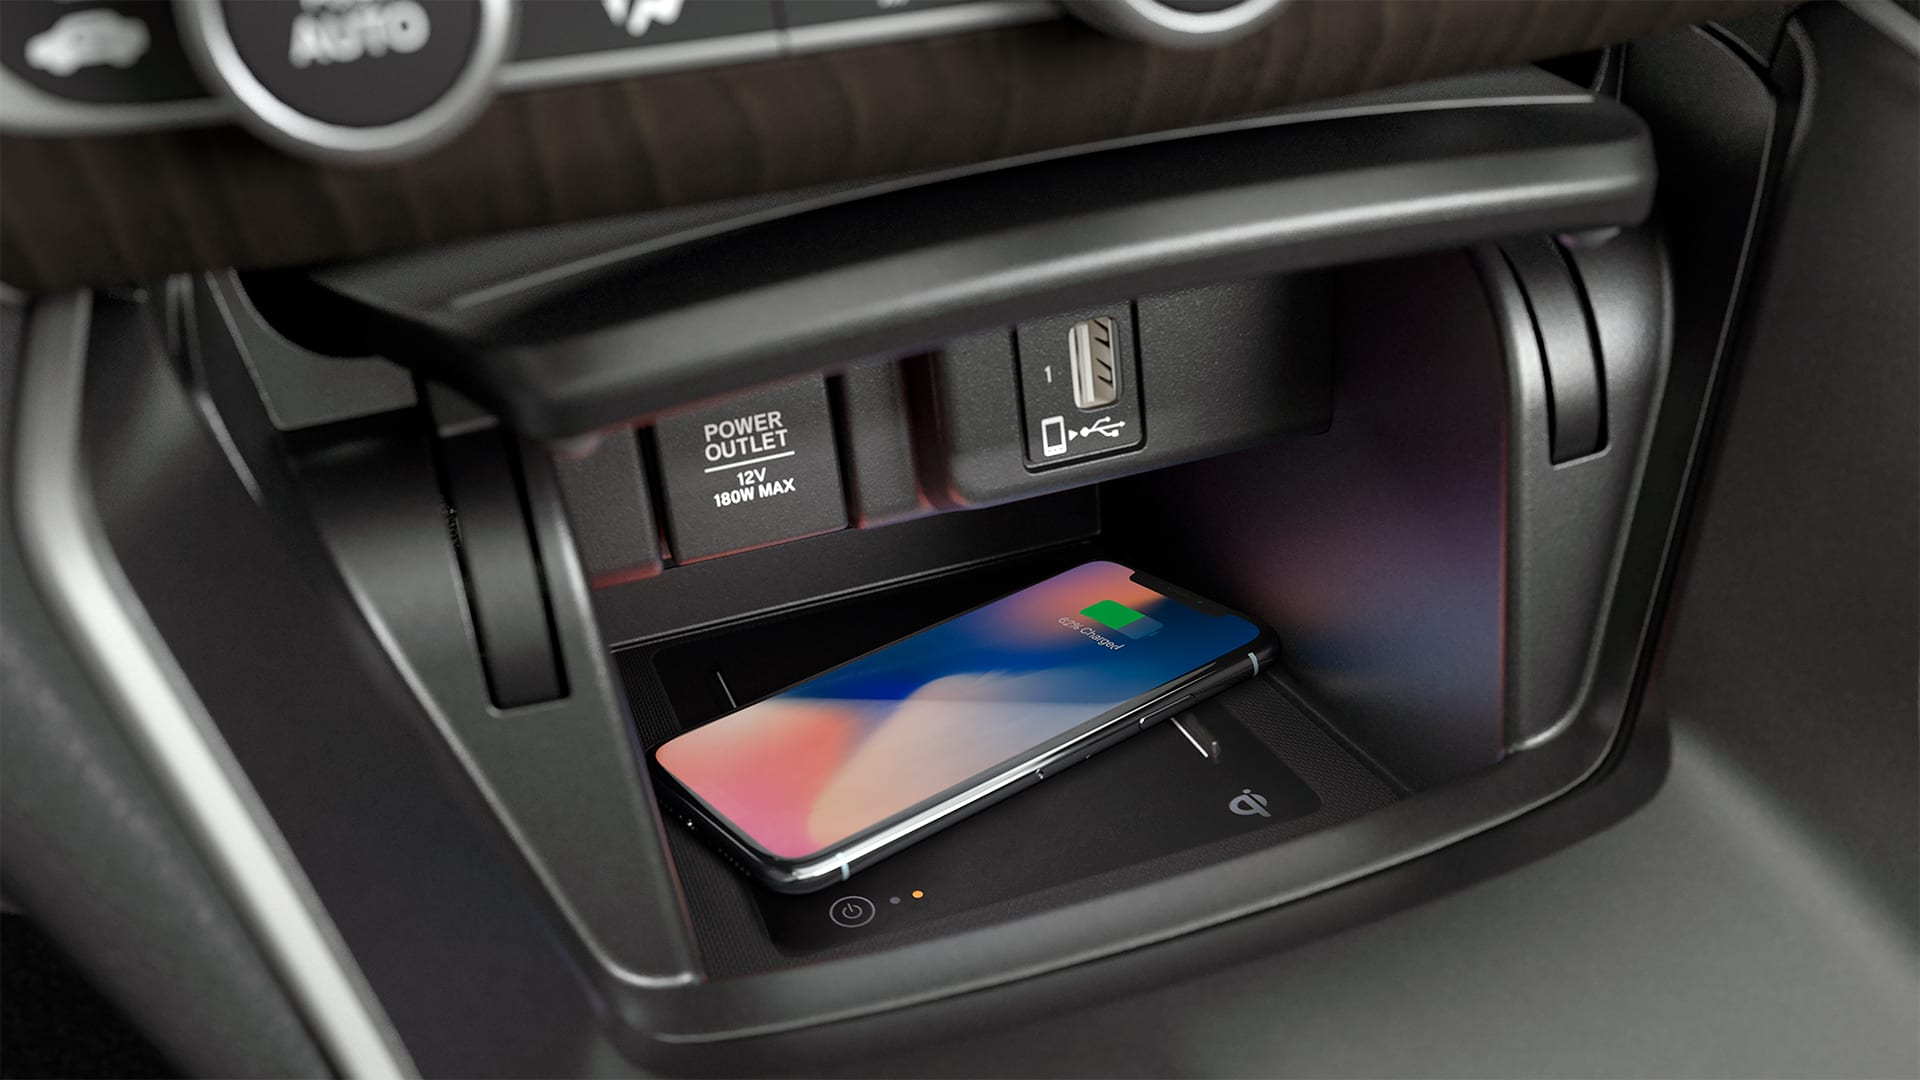 Accord - Carregador wireless para celular